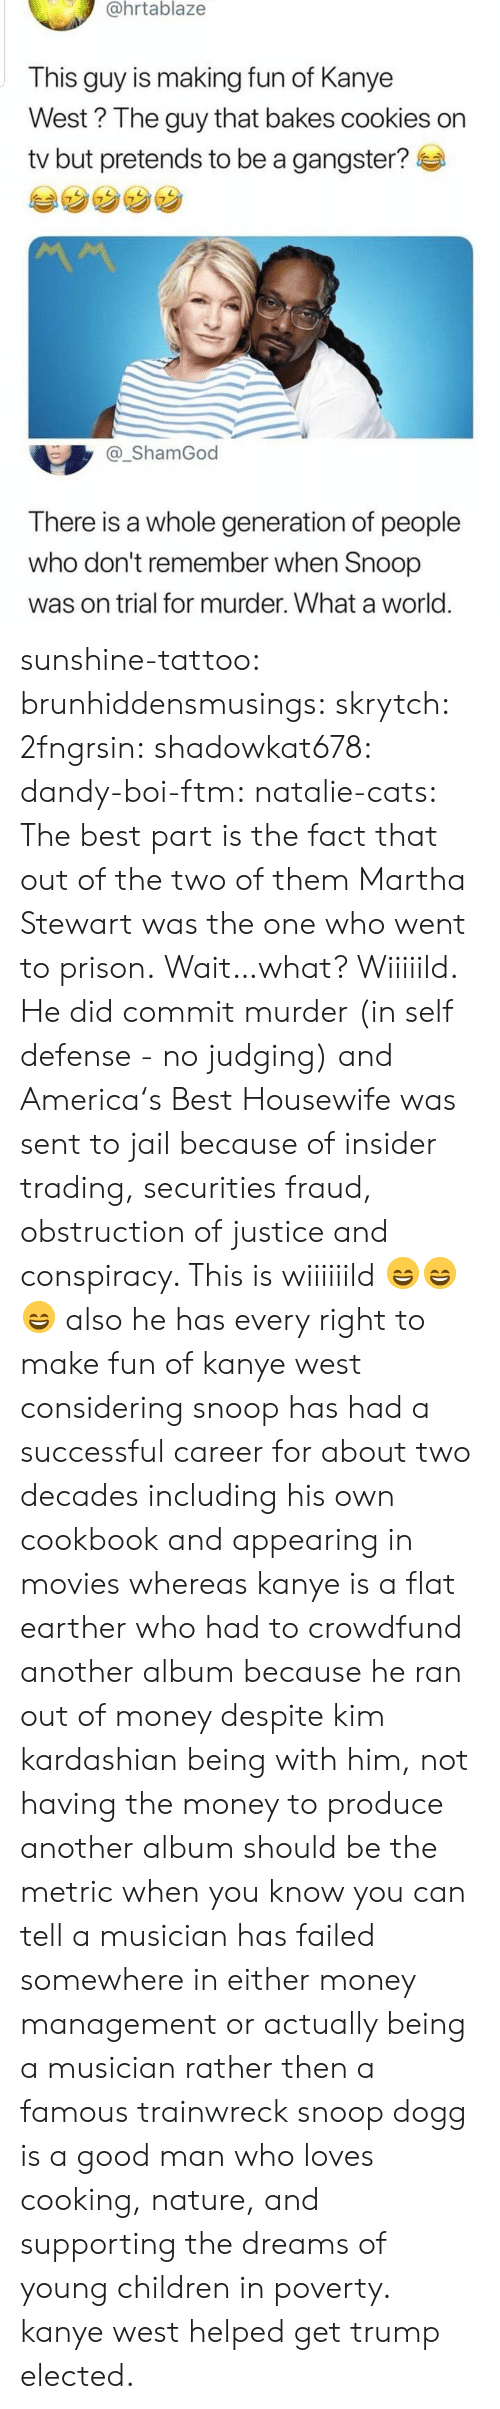 Flat Earther: @hrtablaze  This guy is making fun of Kanye  West? The guy that bakes cookies on  tv but pretends to be a gangster?  _ShamGod  There is a whole generation of people  who don't remember when Snoop  was on trial for murder. What a world sunshine-tattoo: brunhiddensmusings:  skrytch:  2fngrsin:  shadowkat678:  dandy-boi-ftm:   natalie-cats:   The best part is the fact that out of the two of them Martha Stewart was the one who went to prison.   Wait…what?   Wiiiiild. He did commit murder (in self defense - no judging) and America's Best Housewife was sent to jail because of insider trading, securities fraud, obstruction of justice and conspiracy. This is wiiiiiild 😄😄😄    also he has every right to make fun of kanye west considering snoop has had a successful career for about two decades including his own cookbook and appearing in movies whereas kanye is a flat earther who had to crowdfund another album because he ran out of money despite kim kardashian being with him, not having the money to produce another album should be the metric when you know you can tell a musician has failed somewhere in either money management or actually being a musician rather then a famous trainwreck   snoop dogg is a good man who loves cooking, nature, and supporting the dreams of young children in poverty. kanye west helped get trump elected.